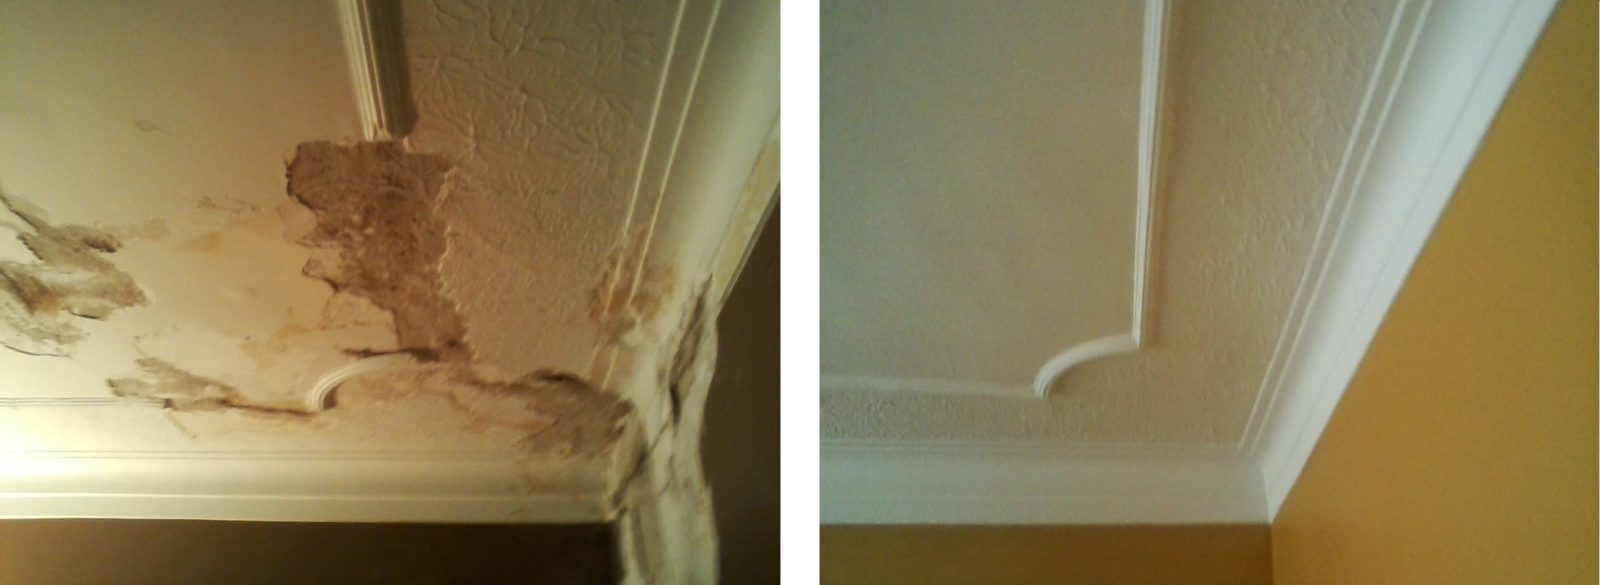 Water damage repaired